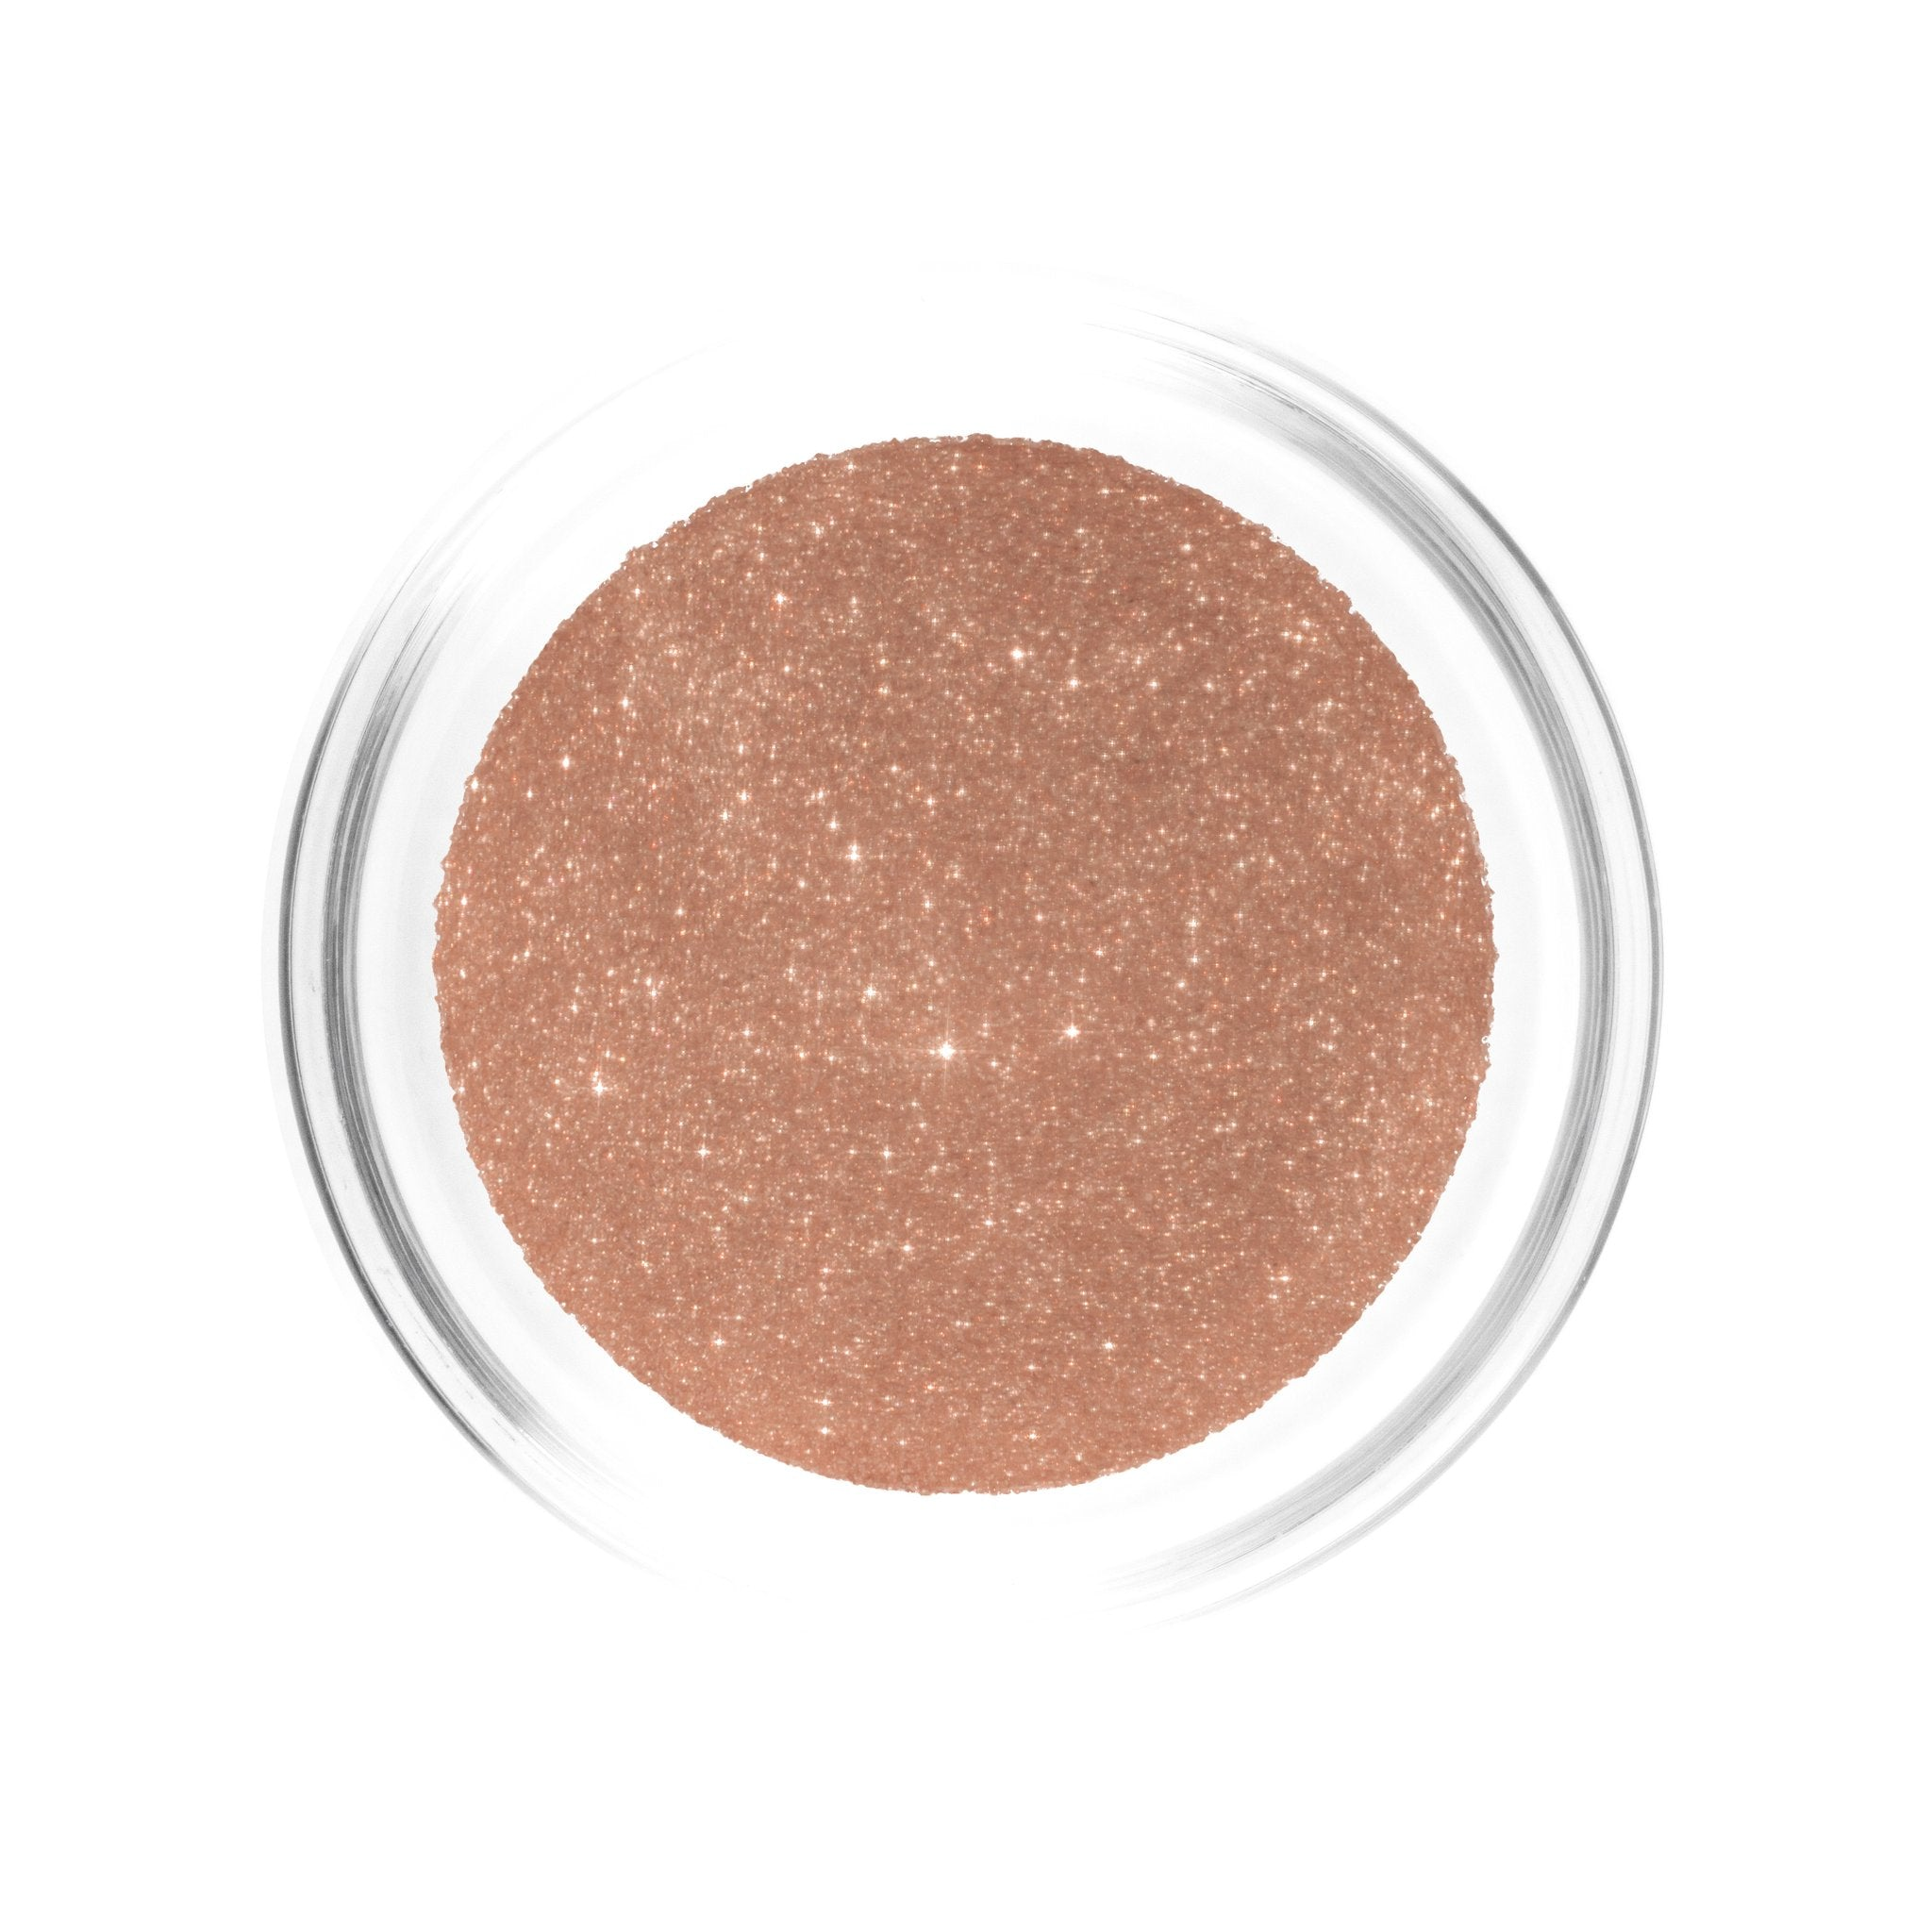 Dancing Dust- Make me Dewy Body Shimmer - Pole inspired - Dry/Lightly perspiring skin - Dark